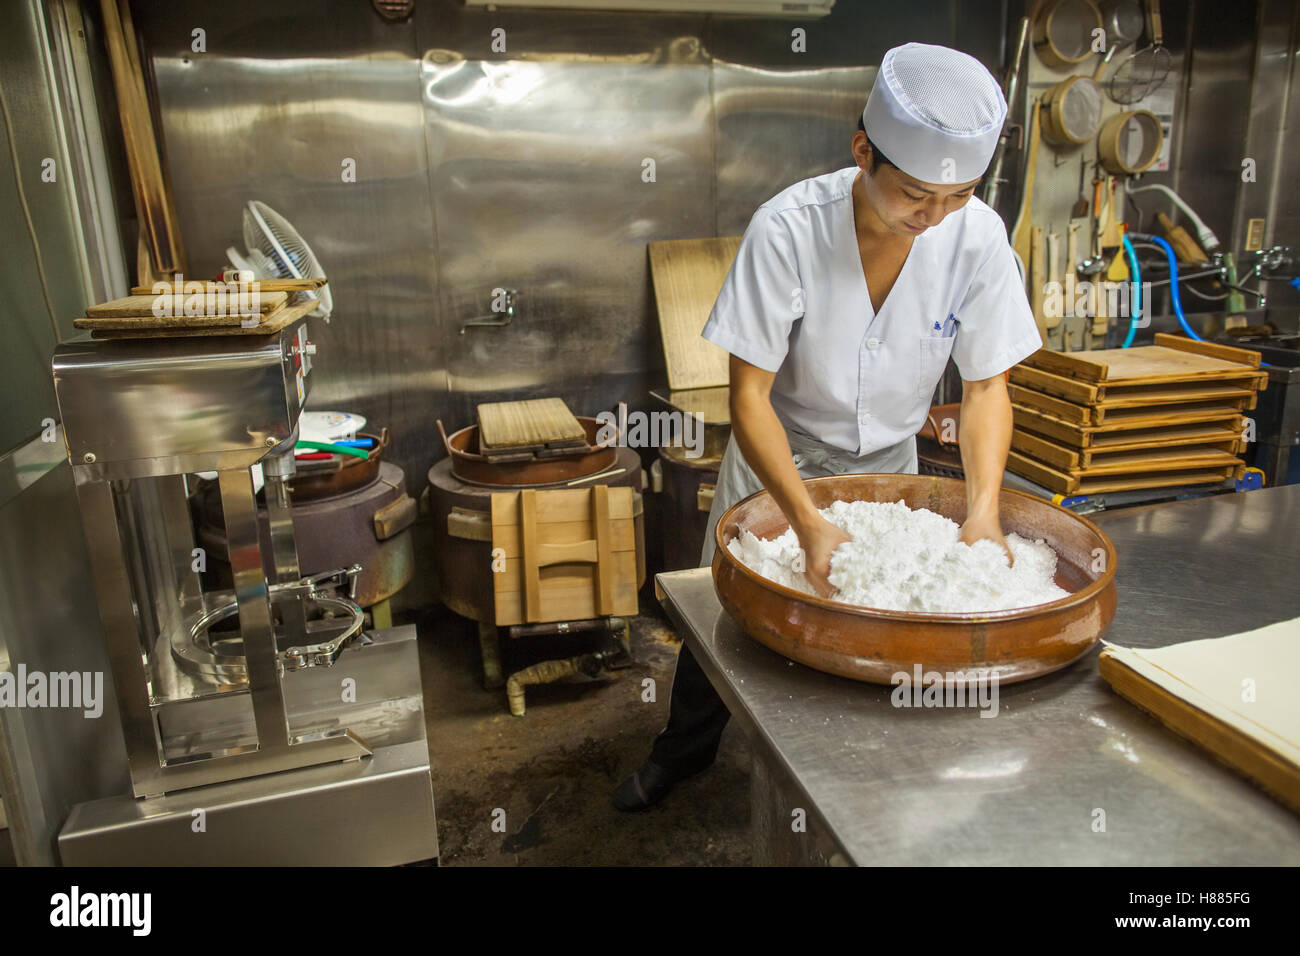 A small artisan producer of wagashi. A man mixing a large bowl of ingredients Stock Photo